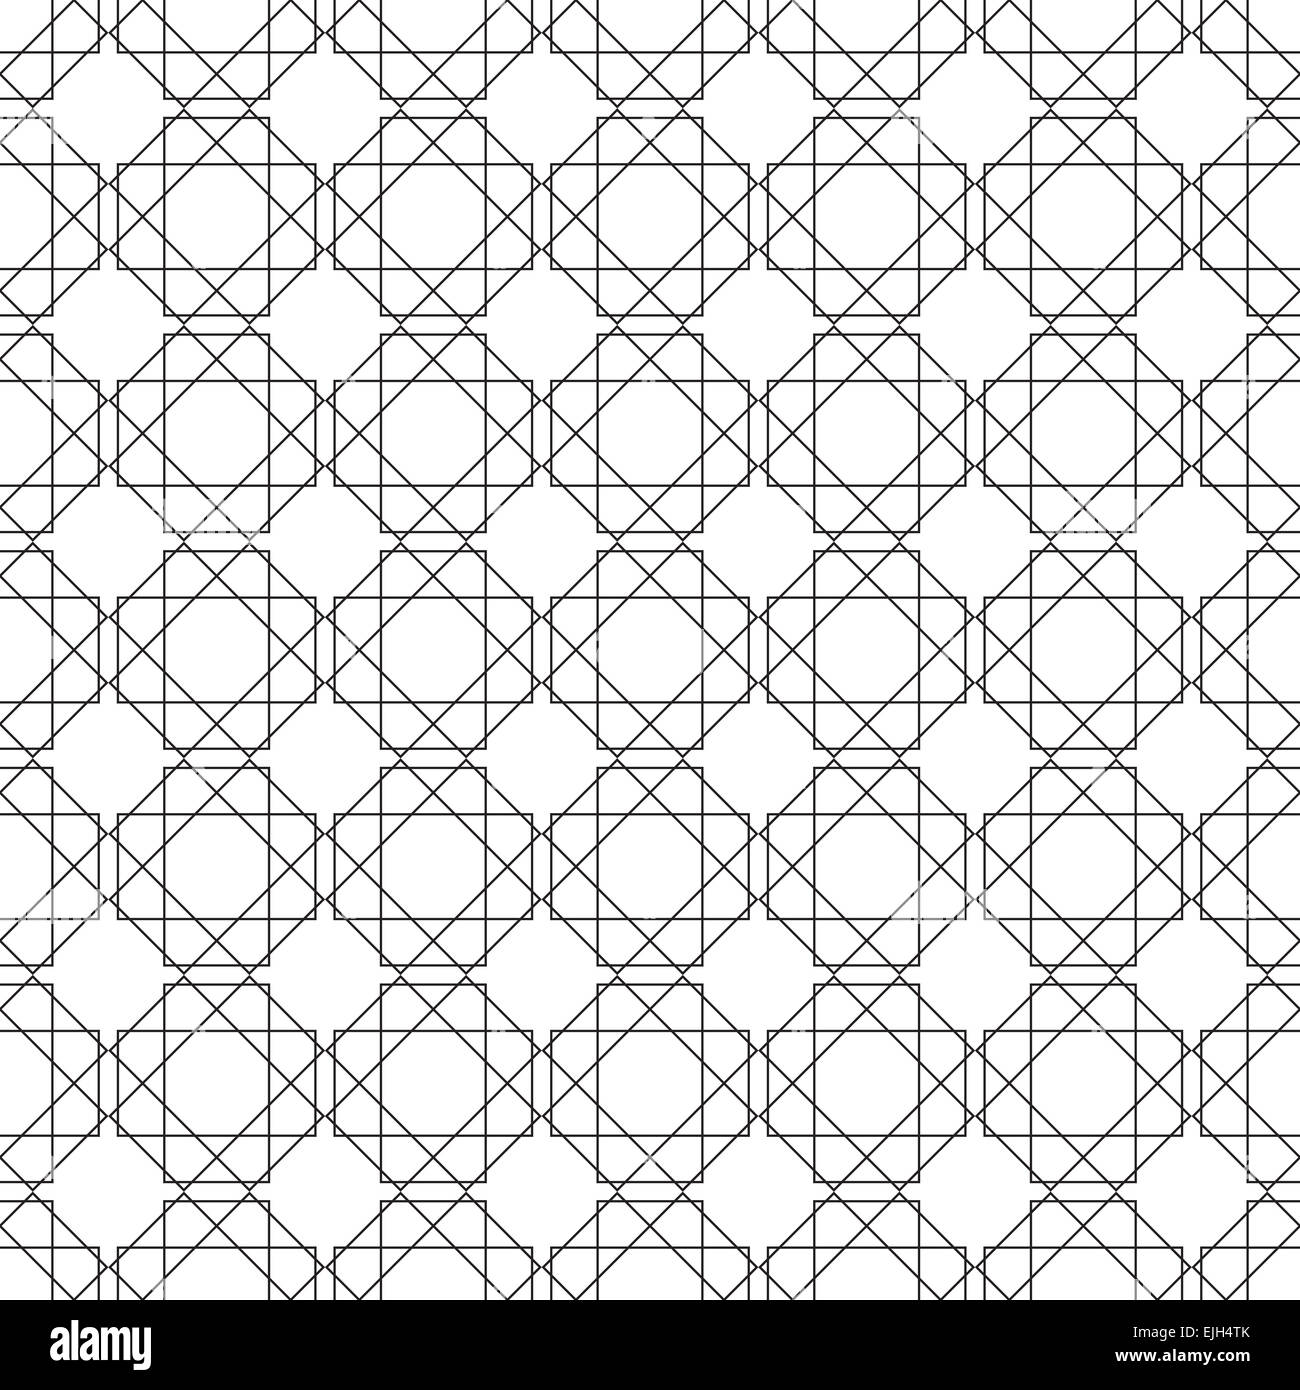 Symmetrical Geometric Shapes Black And White Vector Textile Backdrop. Can  Be Use As Fabric, Tablecloth Pattern